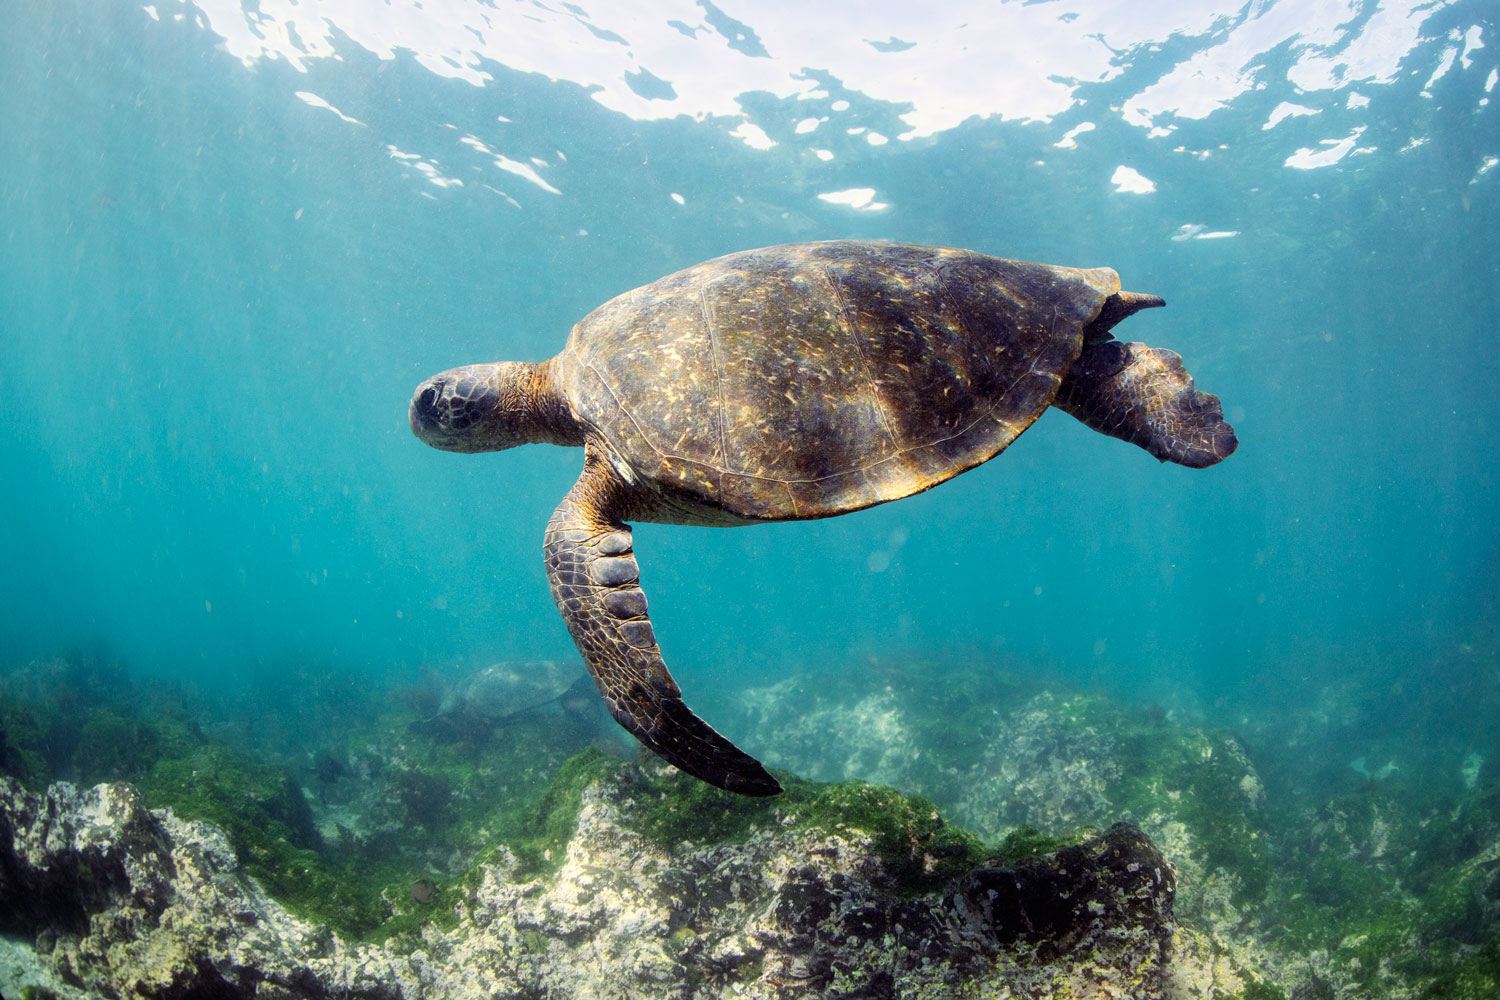 sea turtle honeymoon ideas luxury cruise in the galapagos islands travel tips reviews and suggestions